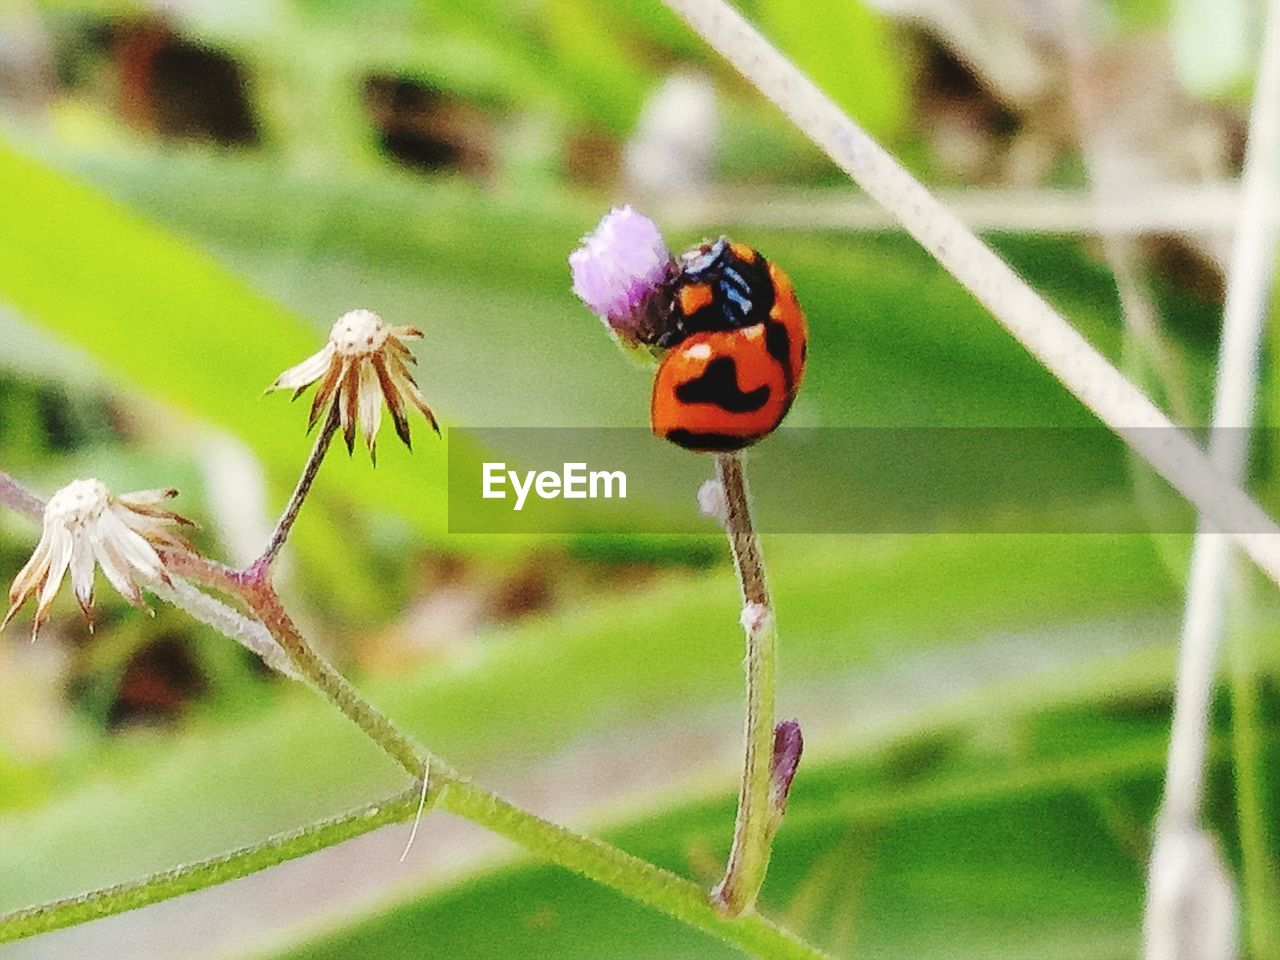 plant, flower, flowering plant, beauty in nature, insect, animal wildlife, focus on foreground, invertebrate, animal, animal themes, close-up, animals in the wild, vulnerability, fragility, one animal, nature, growth, plant stem, day, no people, outdoors, flower head, animal wing, pollination